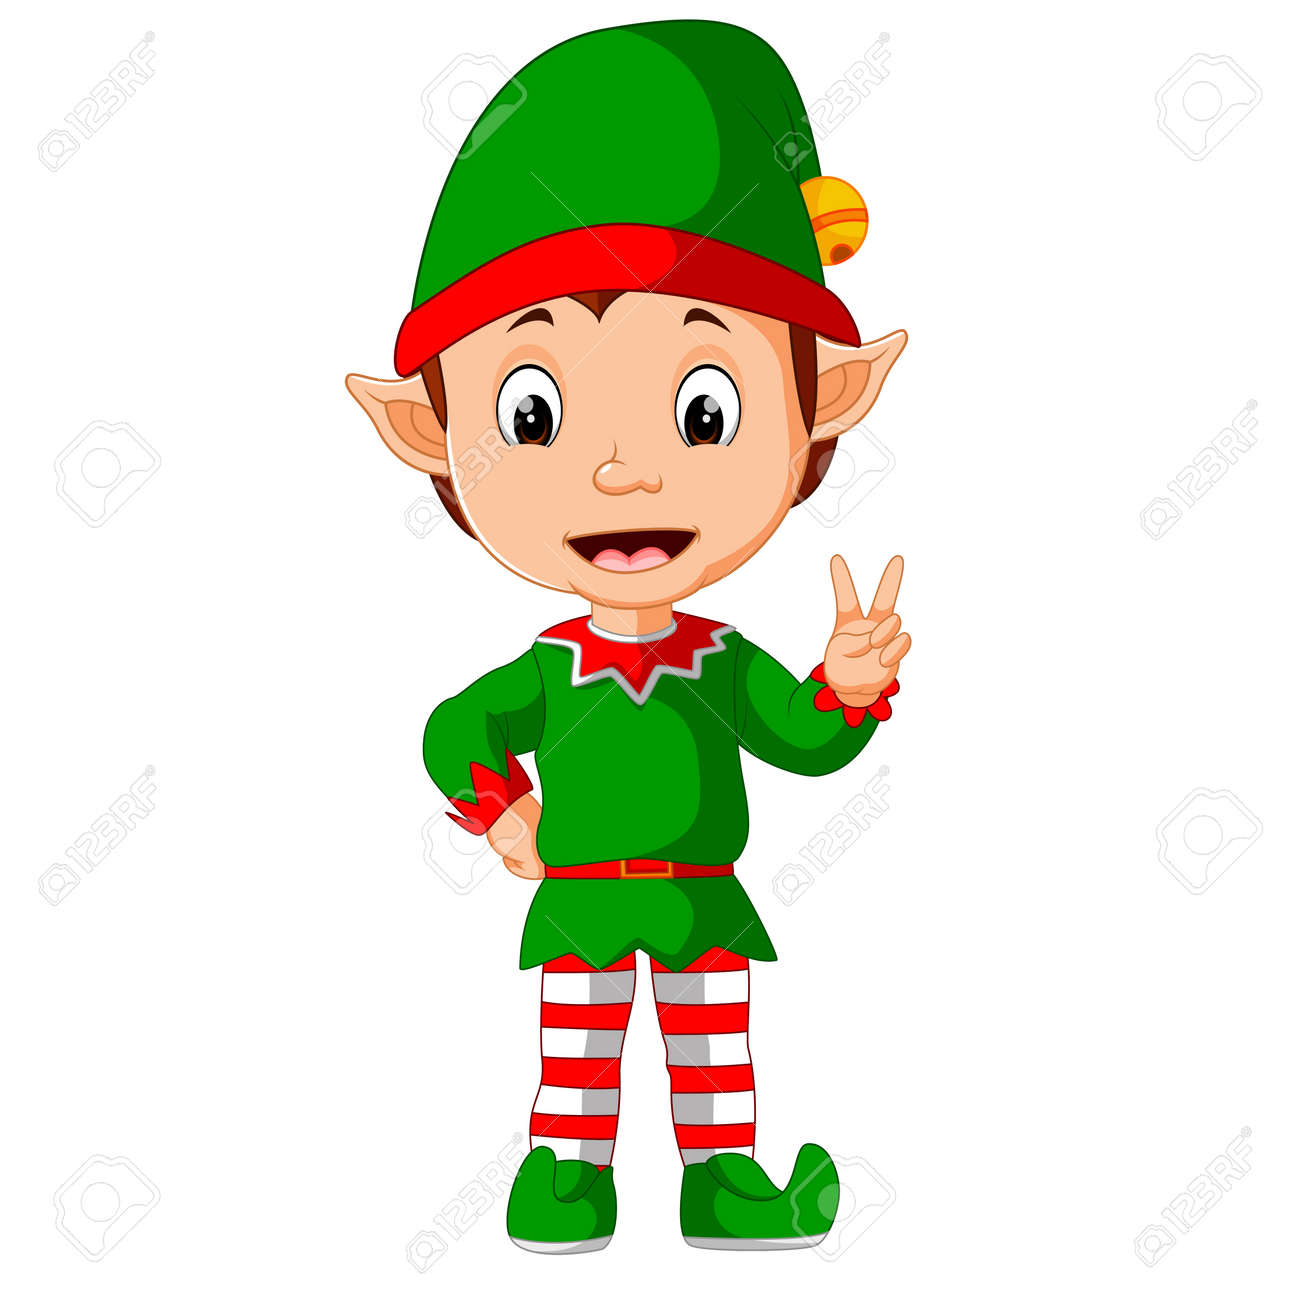 Cute Christmas Pictures.Cute Christmas Elf Cartoon Presenting